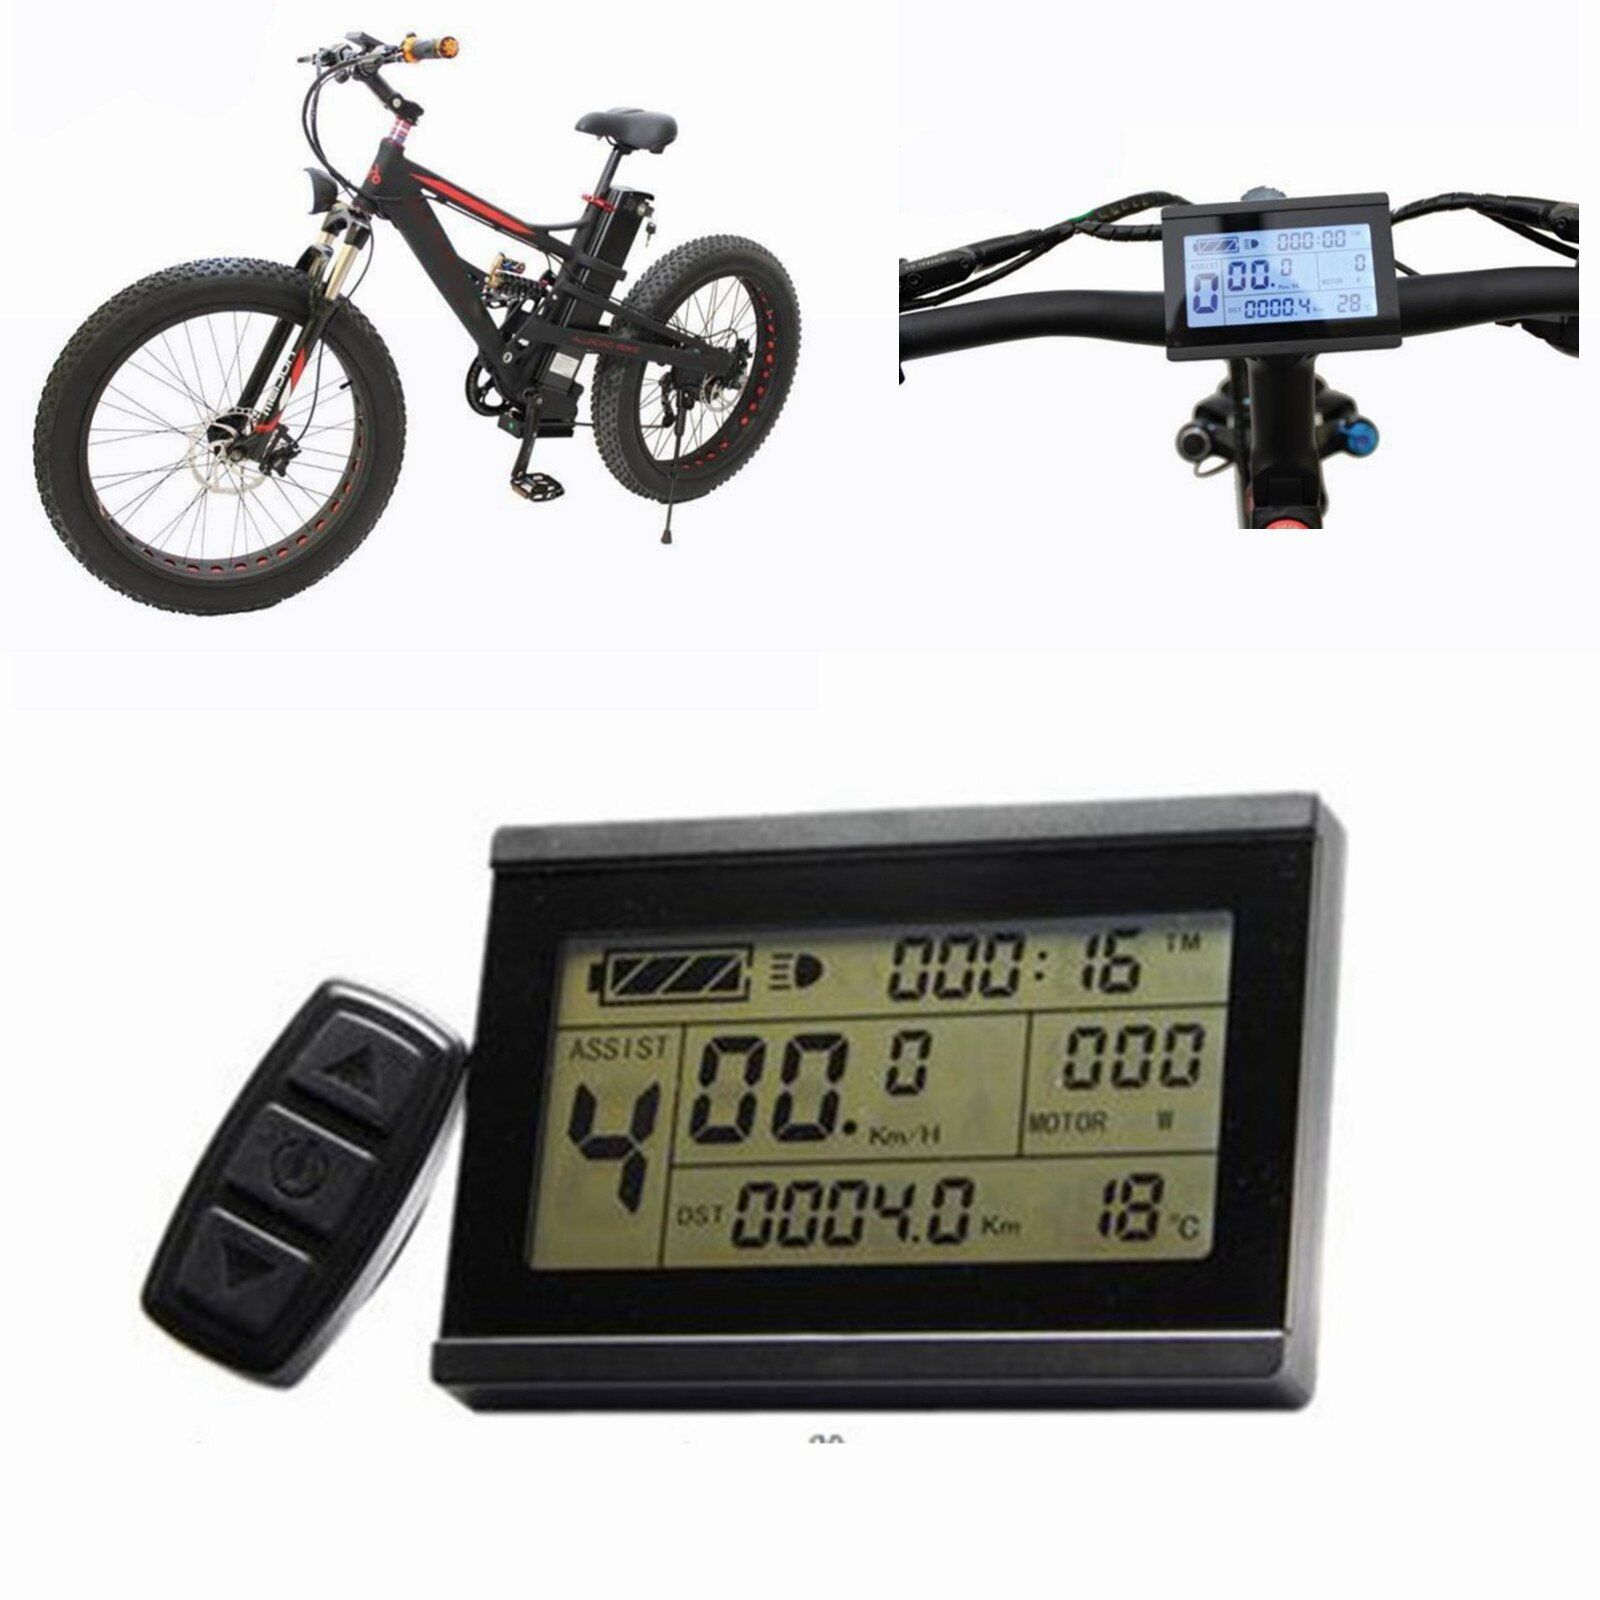 24-48V Risunmotor LCD3 Display Meter   Control Panel  For e-Bike Electric Bicycle  best reputation